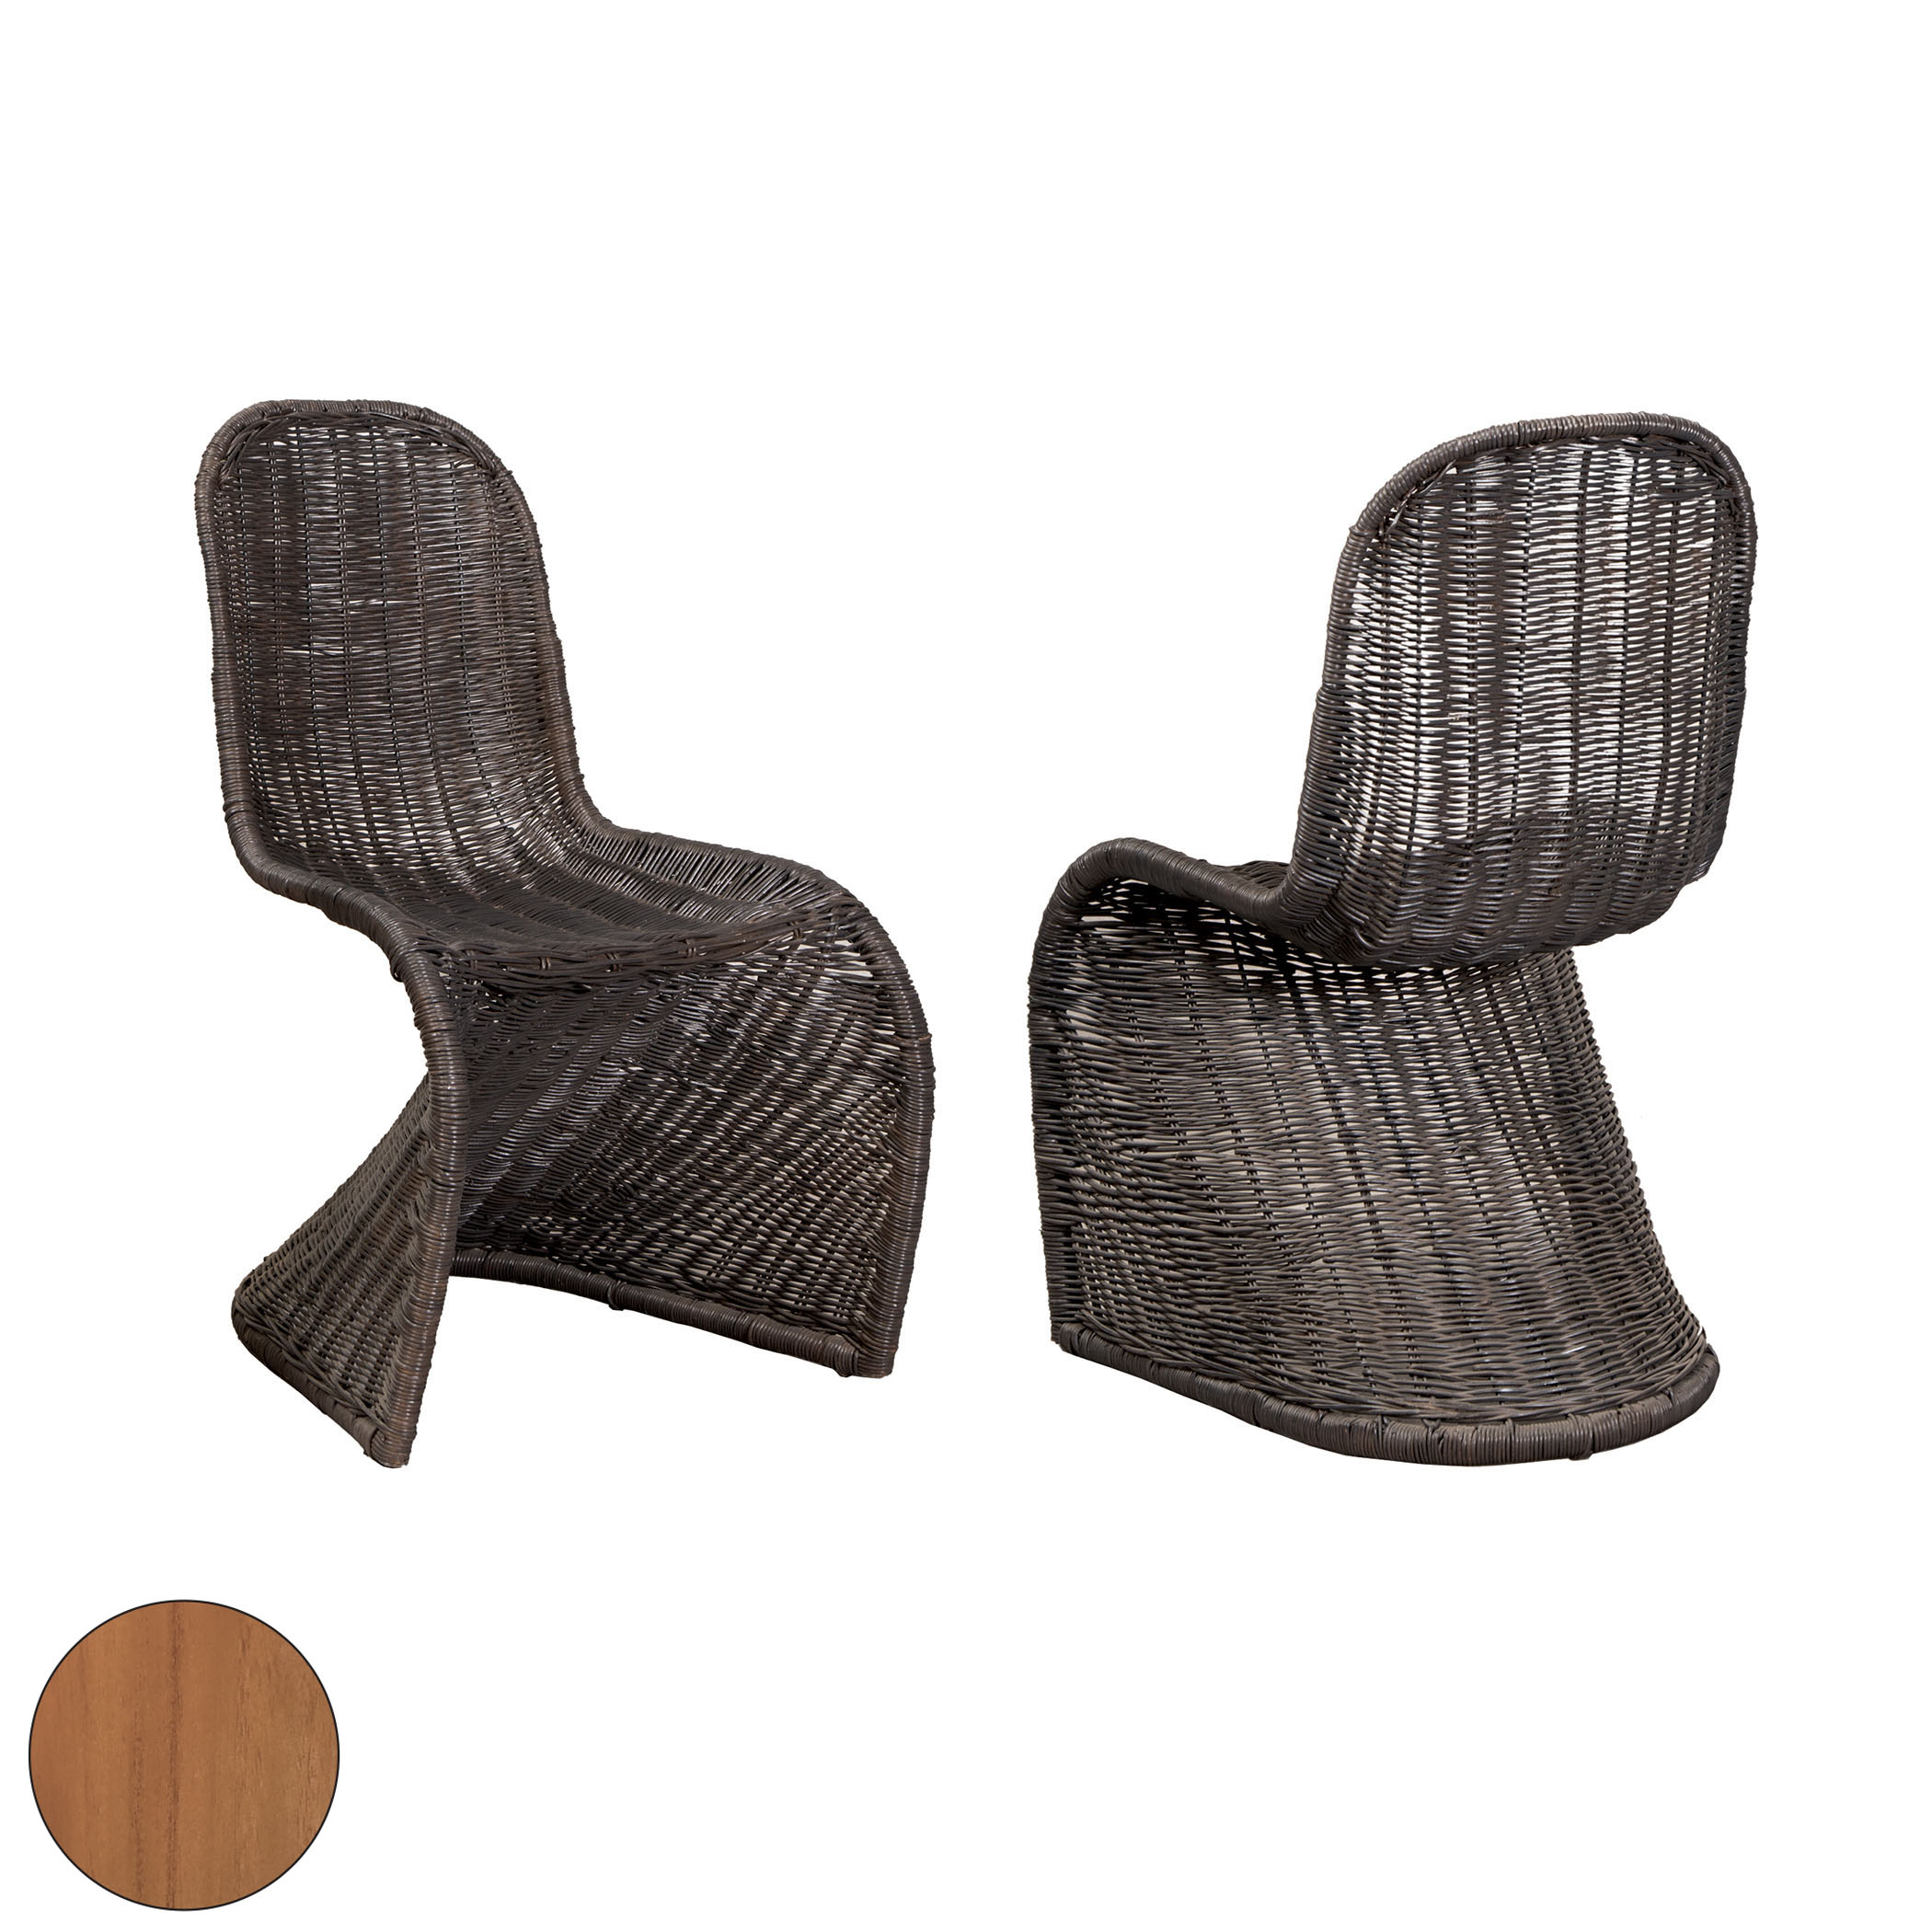 Rattan Dining Chair Set of 2 6917509P-ET | ELK Home